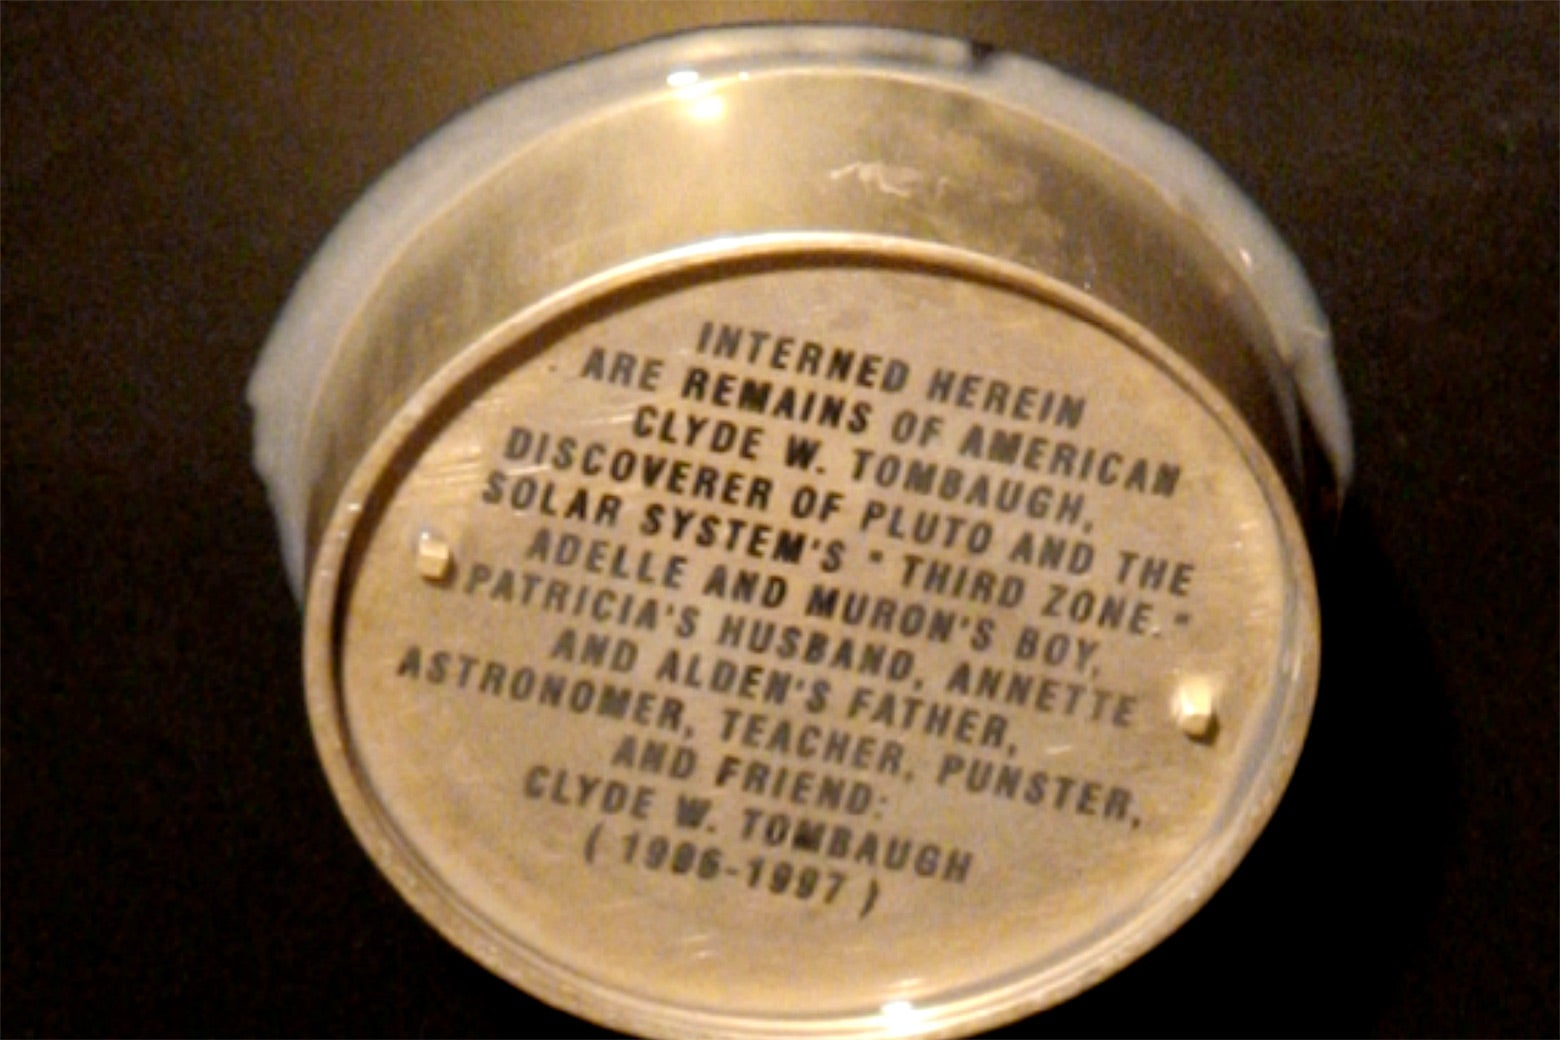 The ashes of astronomer Clyde Tombaugh.